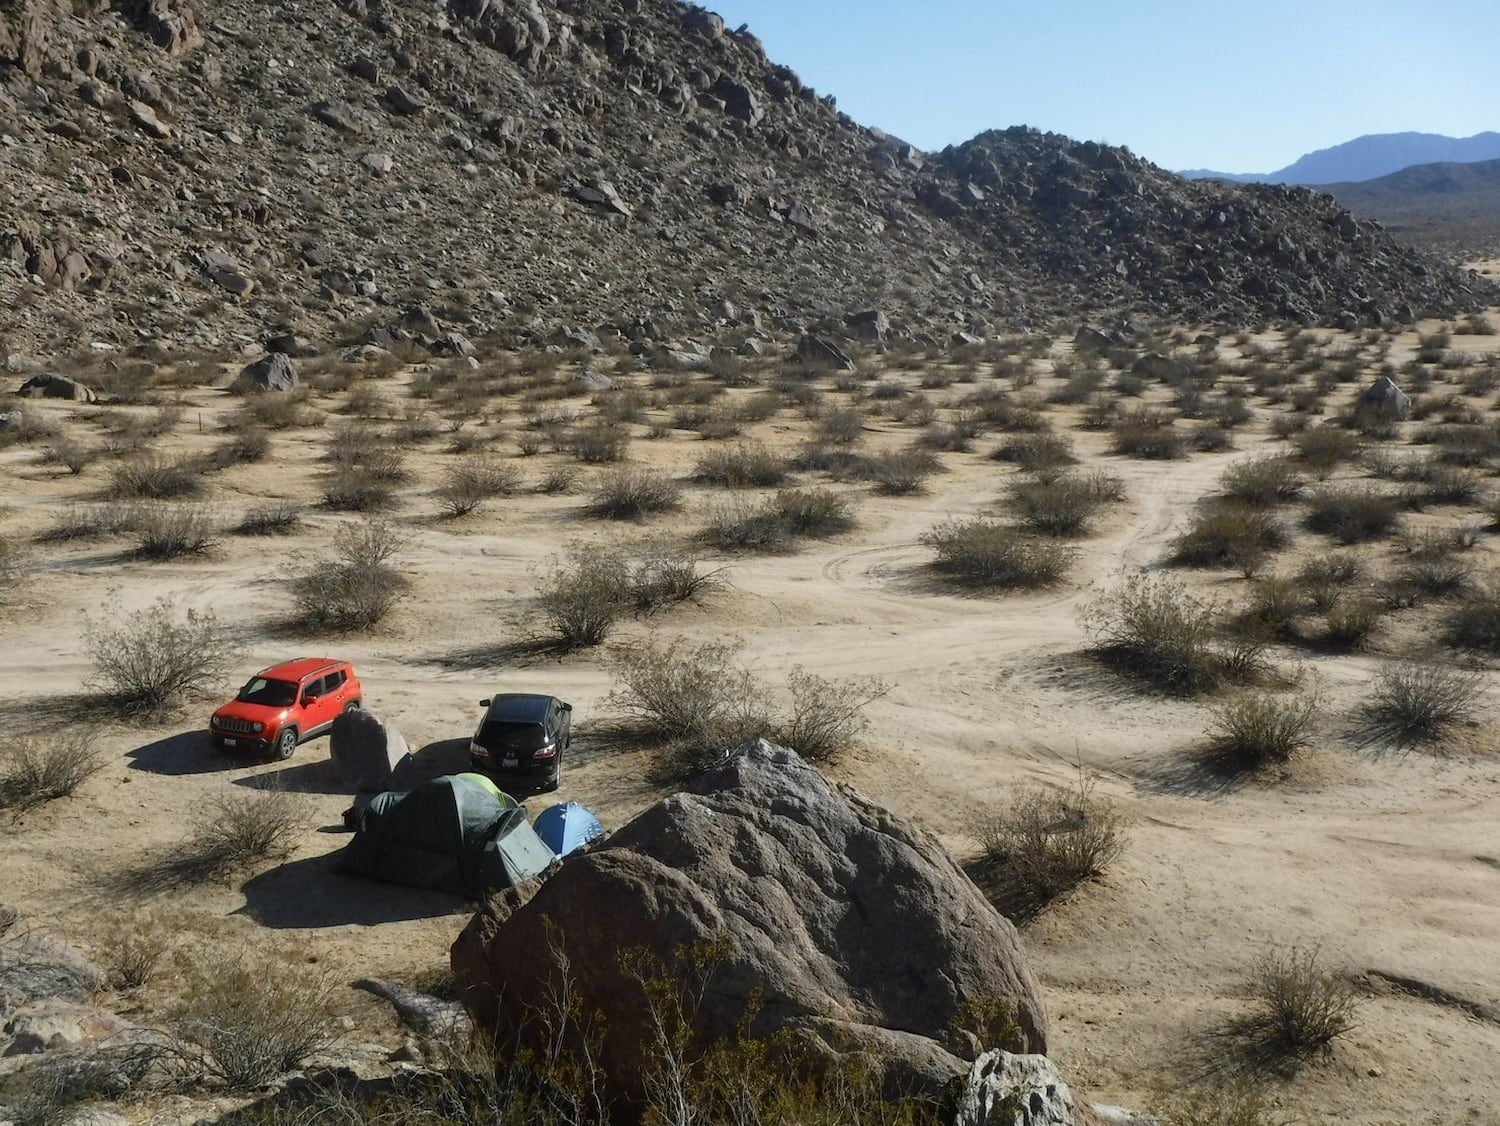 cars camped on the desert floor